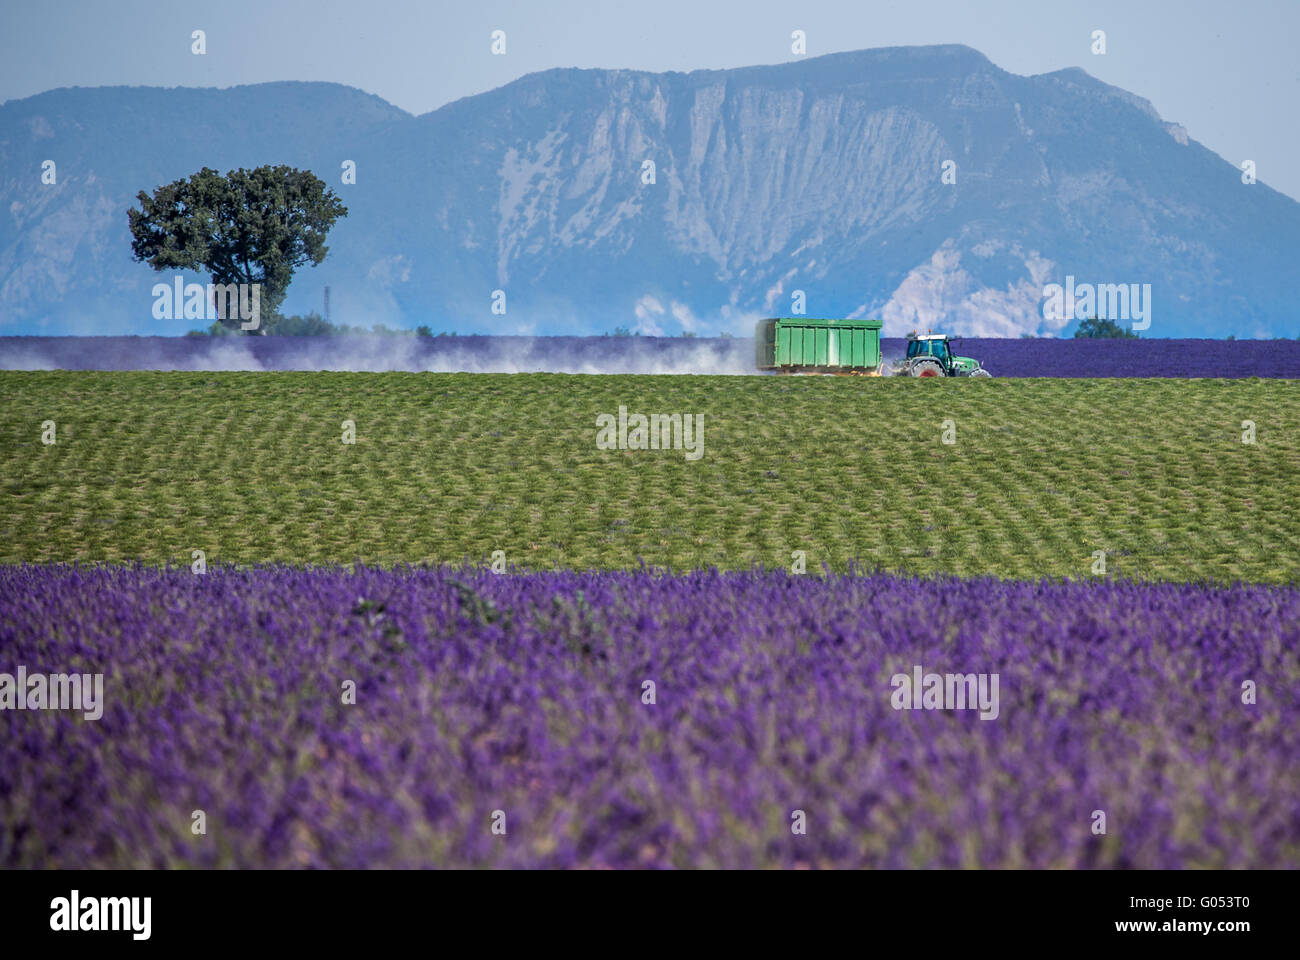 lavender field in the region of Provence, southern France Stock Photo